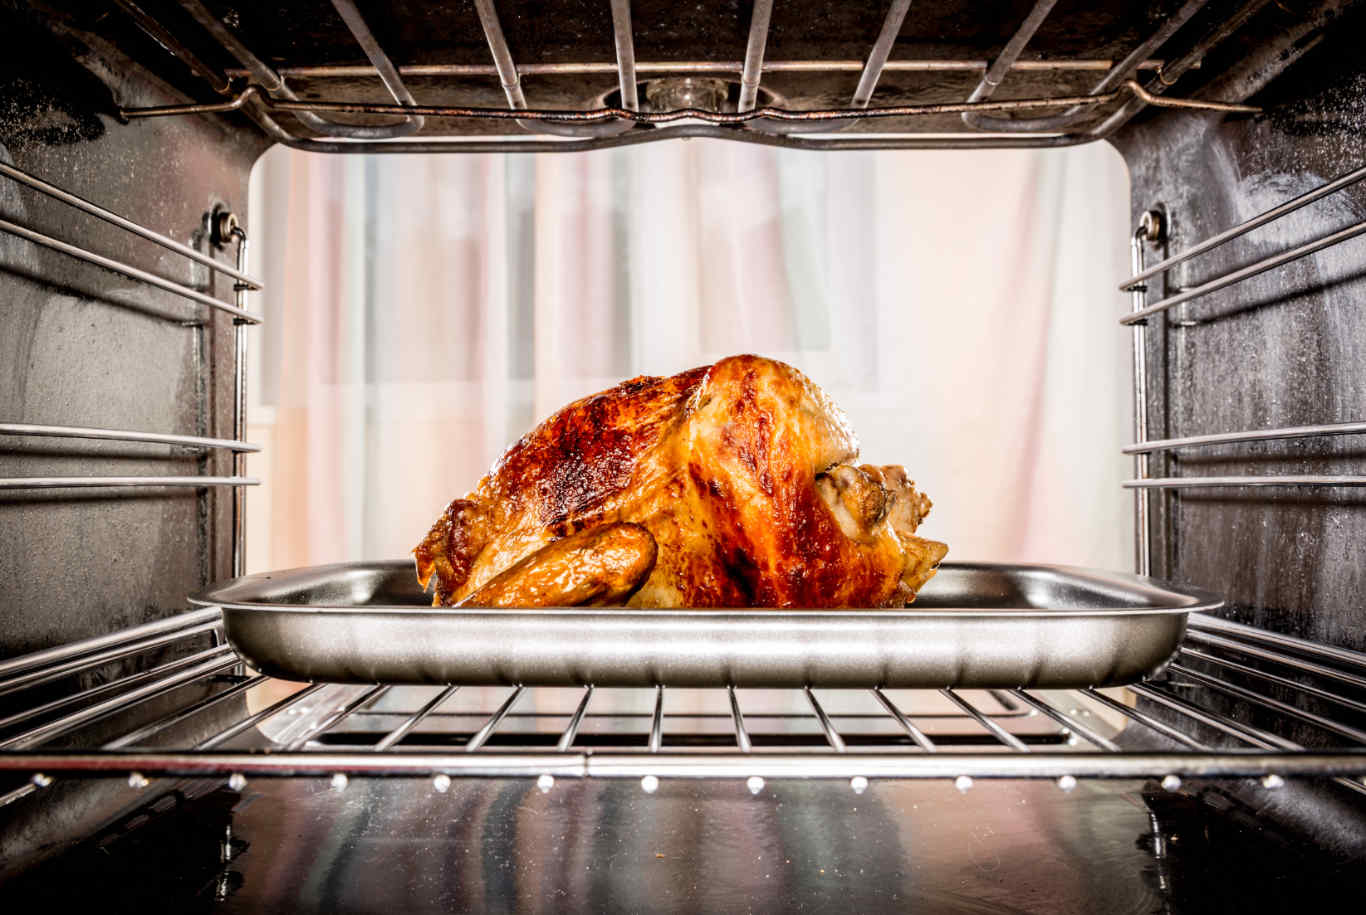 Stylish What Is Healthiest Way To Cook Meat Healthiest Way To Cook Ken Breast Bodybuilding Healthiest Way To Cook Ken Livers nice food Healthiest Way To Cook Chicken